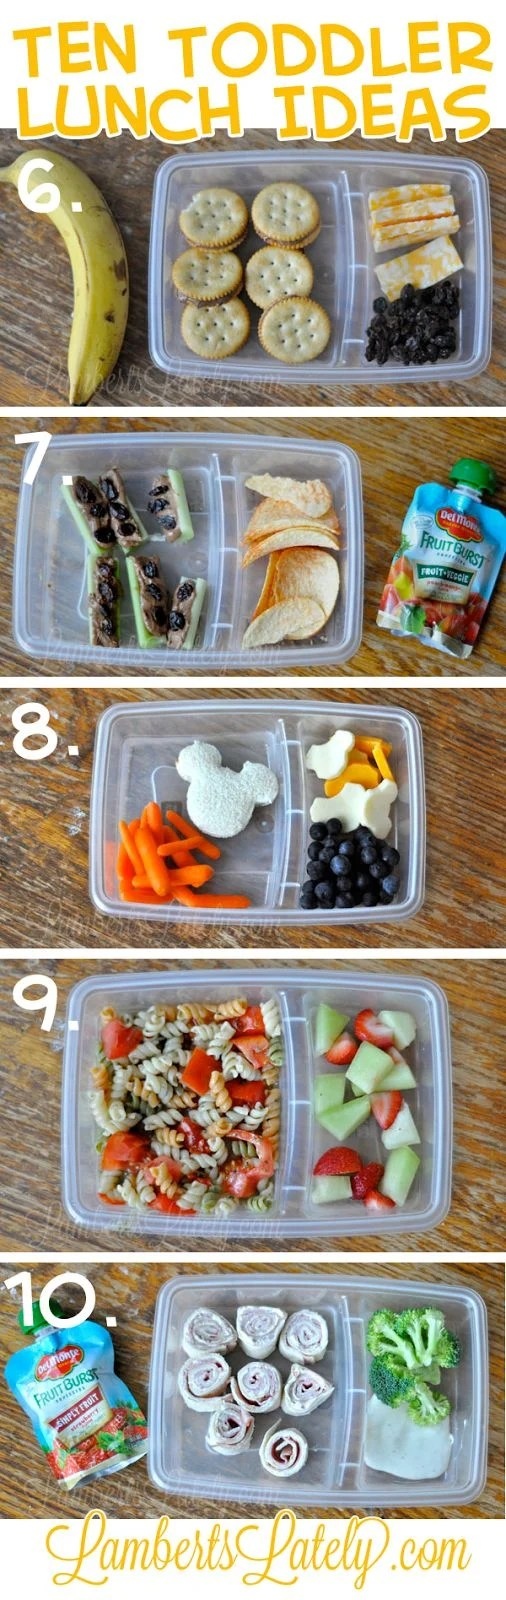 Deluxe Toddlers Toddlers Healthy Easy Breakfast Ideas Diarrhea Breakfast Ideas Quick Easy Toddler Lunch Are Back To School School Lunch Ideas Kids That Are nice food Breakfast Ideas For Toddlers